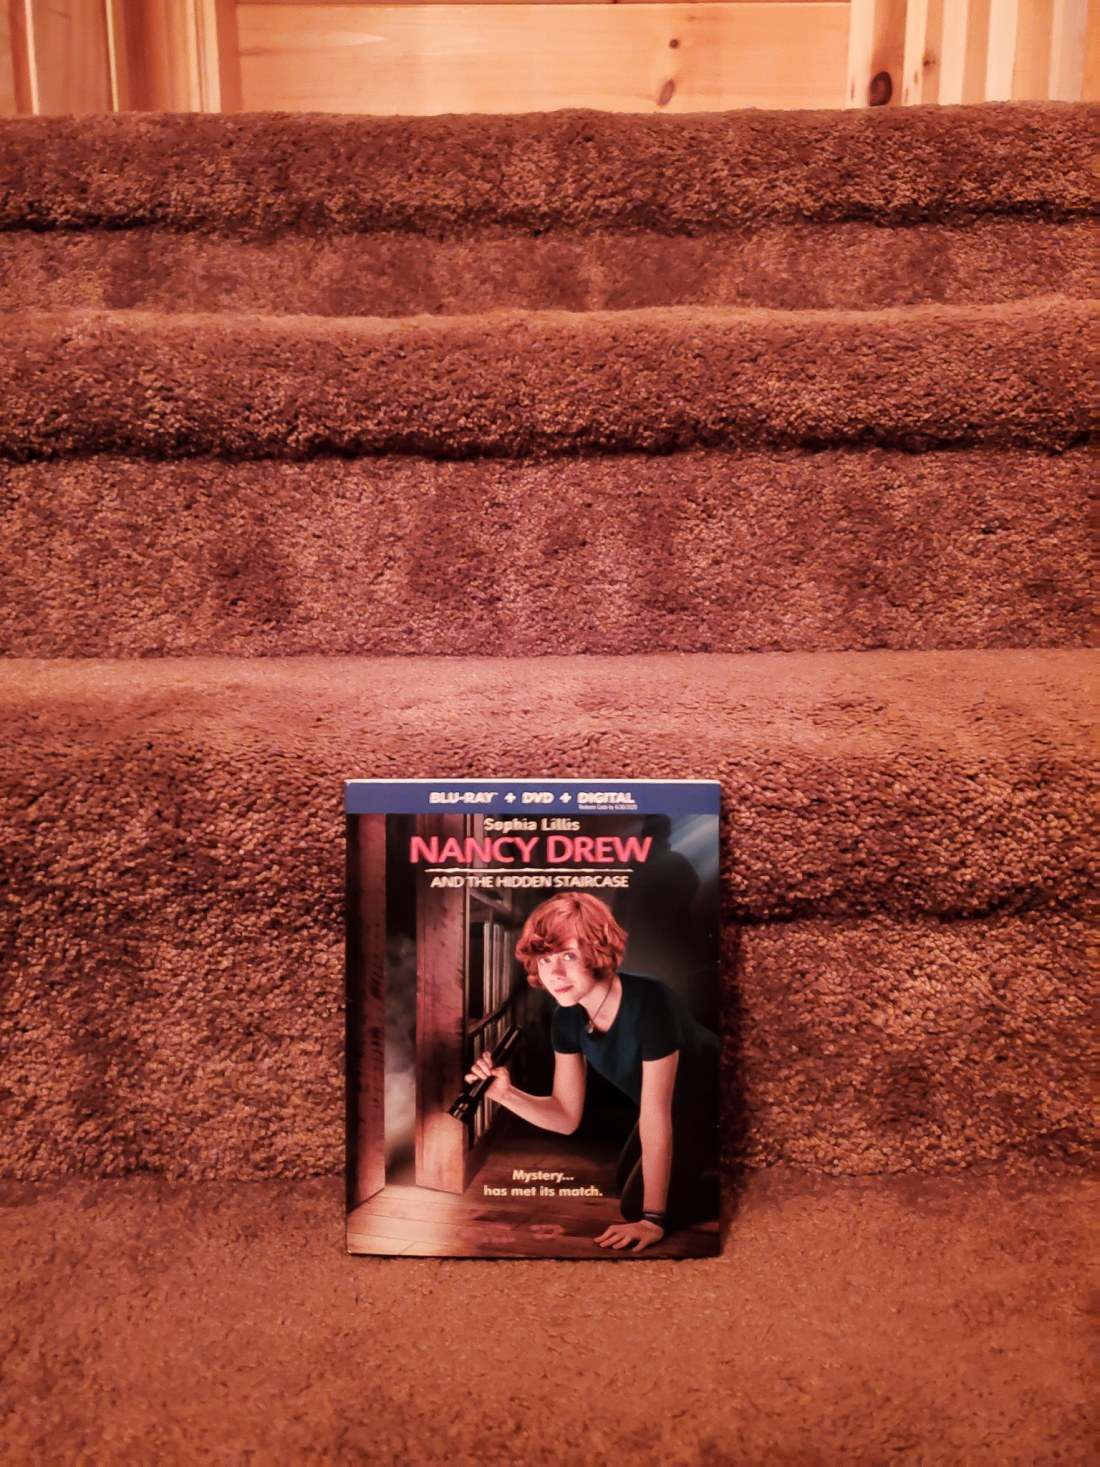 Nancy Drew And The Hidden Staircase DVD on Stairs. Nancy Drew And The Hidden Staircase film is heading home on Digital March 26, 2019 and on Blu-ray™ Combo Pack & DVD on April 2, 2019! If you haven't heard about the newest film in the Nancy Drew series then look no further. Check out all of the info below on what to expect with this family-friendly film.